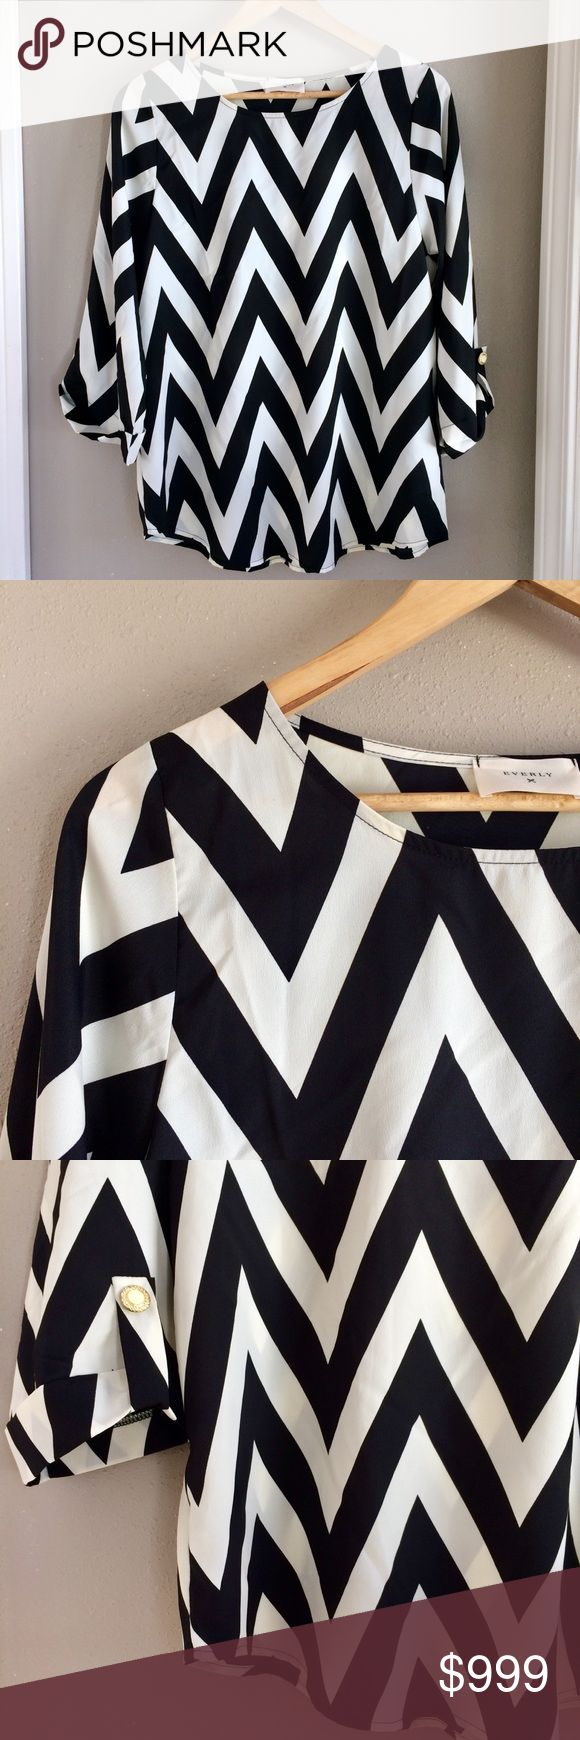 L Everly Chevron Top L Everly Chevron Top. Black and white. Cropped, cuffed sleeve with gold and white button detail. So pretty for date night, work or a holiday party. Absolutely darling top! Everly brand sold at . Excellent preowned condition, looks brand new. Bundle for additional discounts and seller offers. Everly Tops